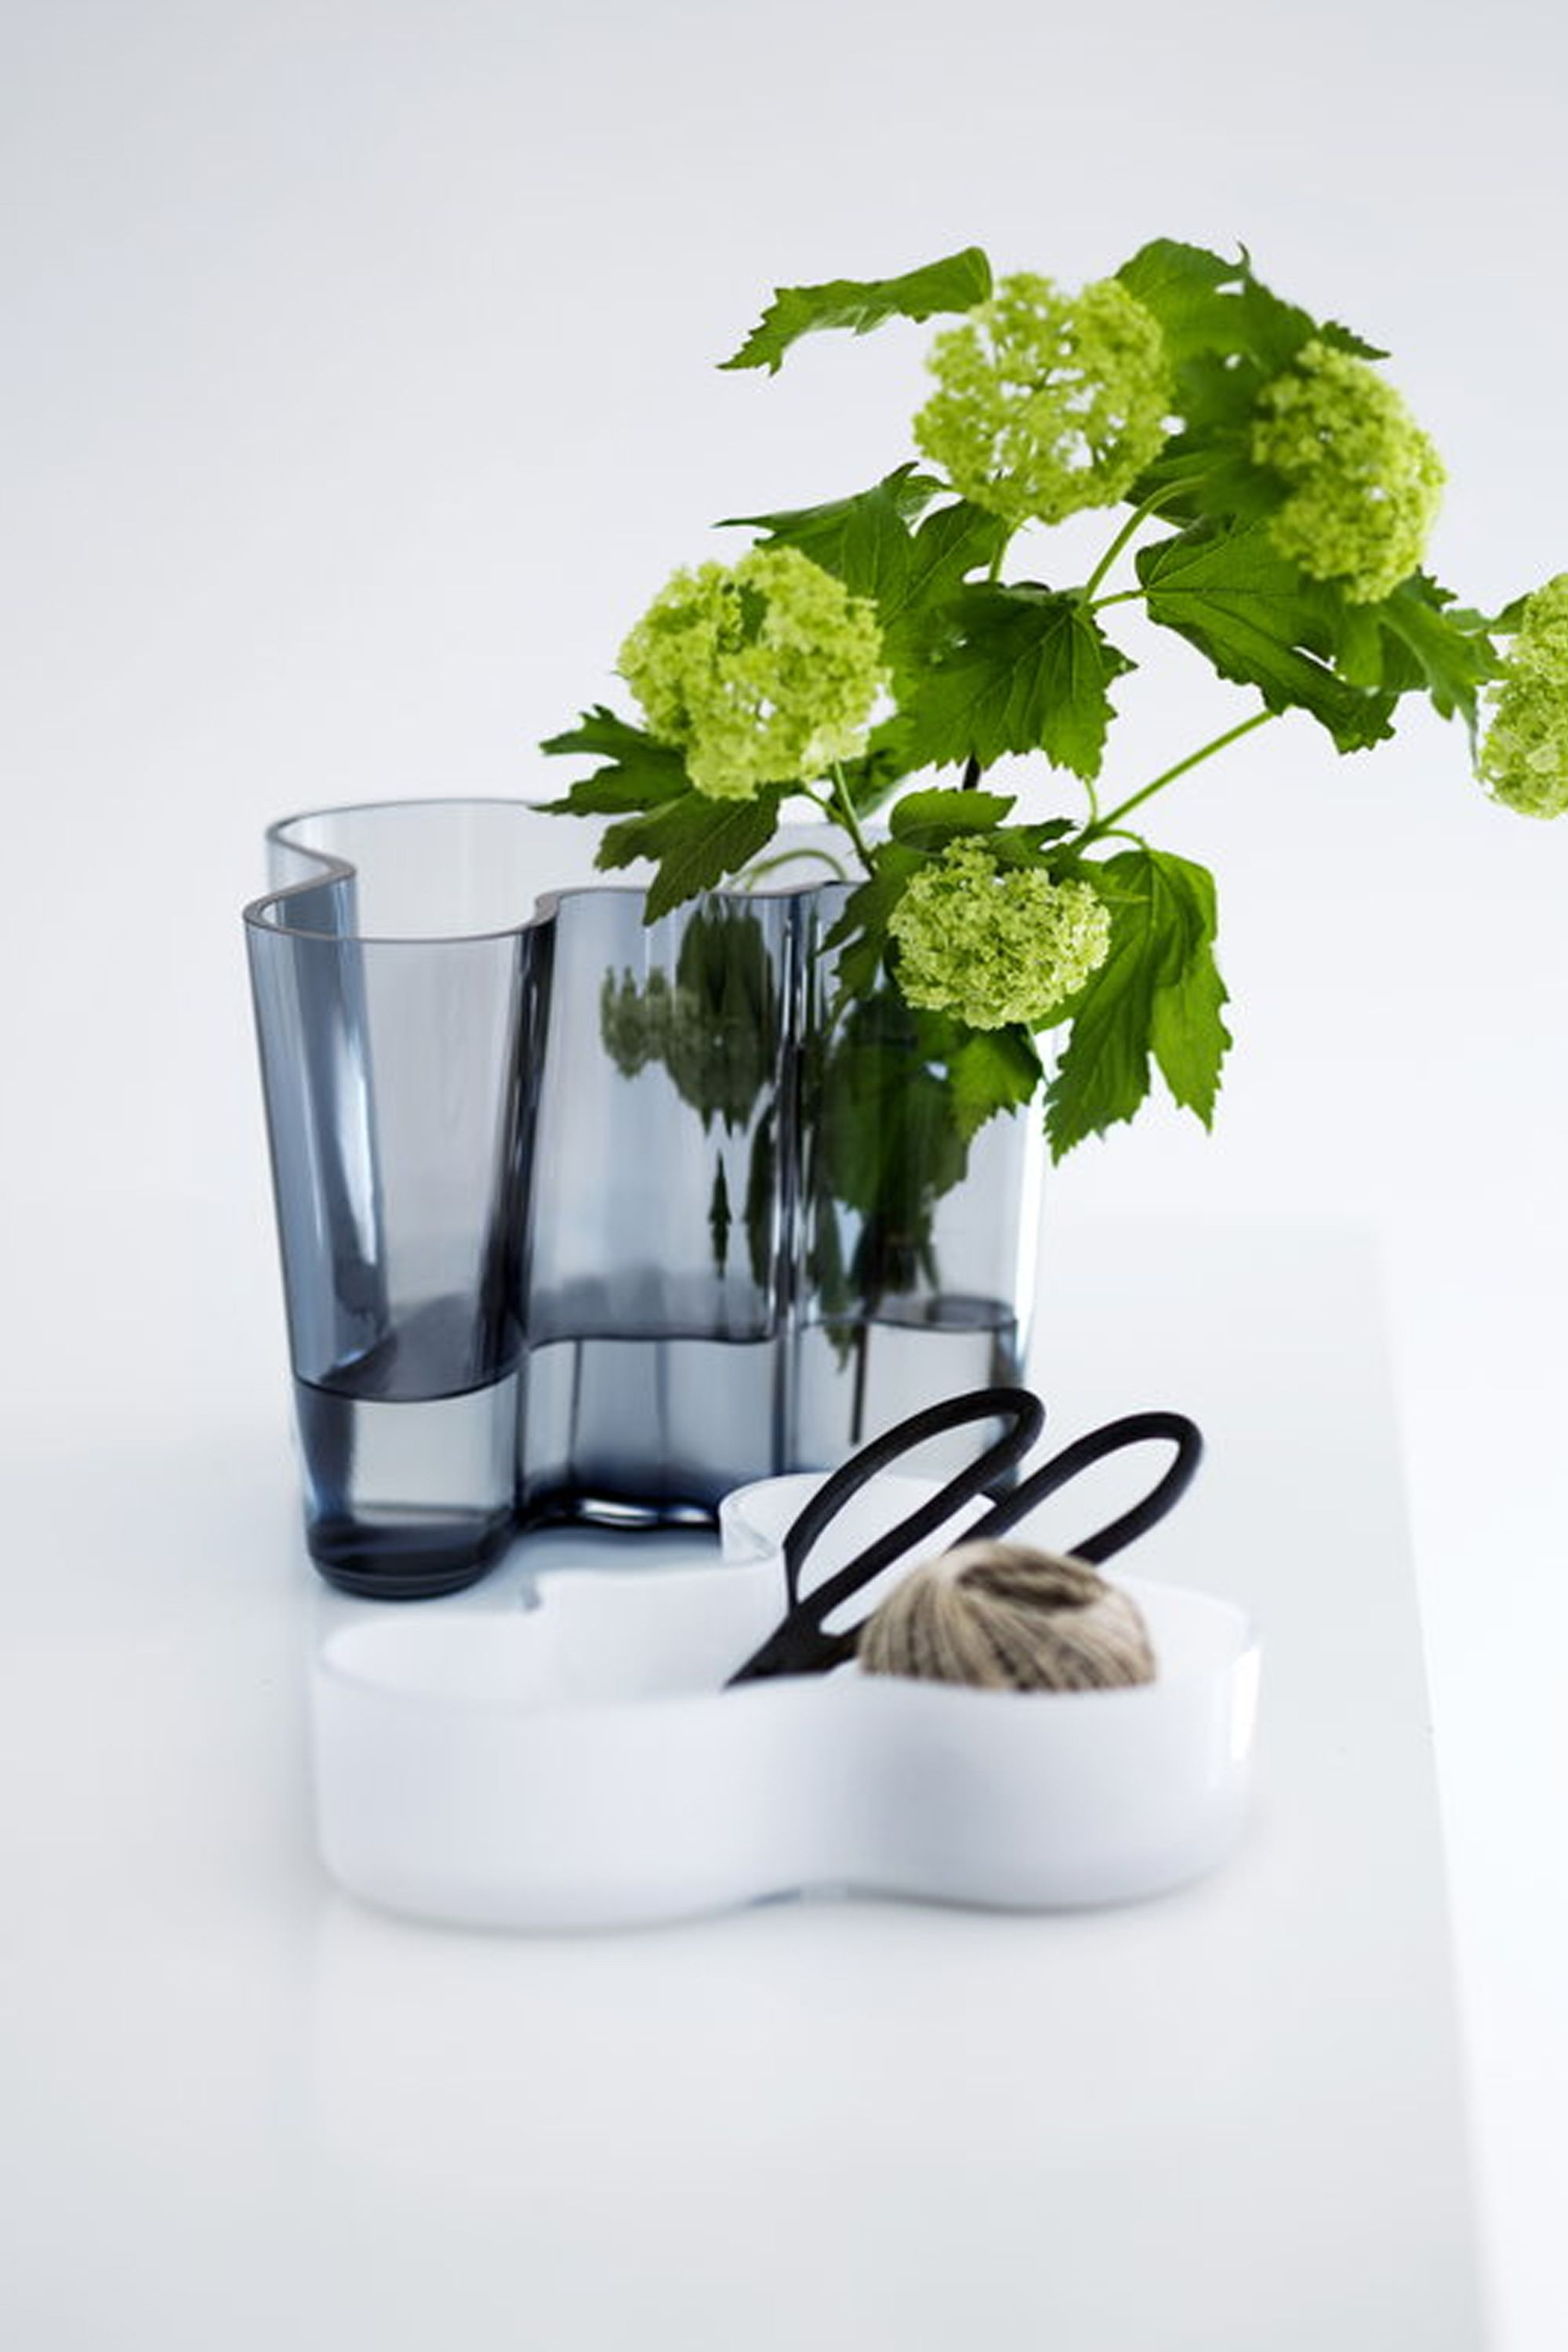 alvar zoom iittala aalto vase uk rain co royaldesign viewitem